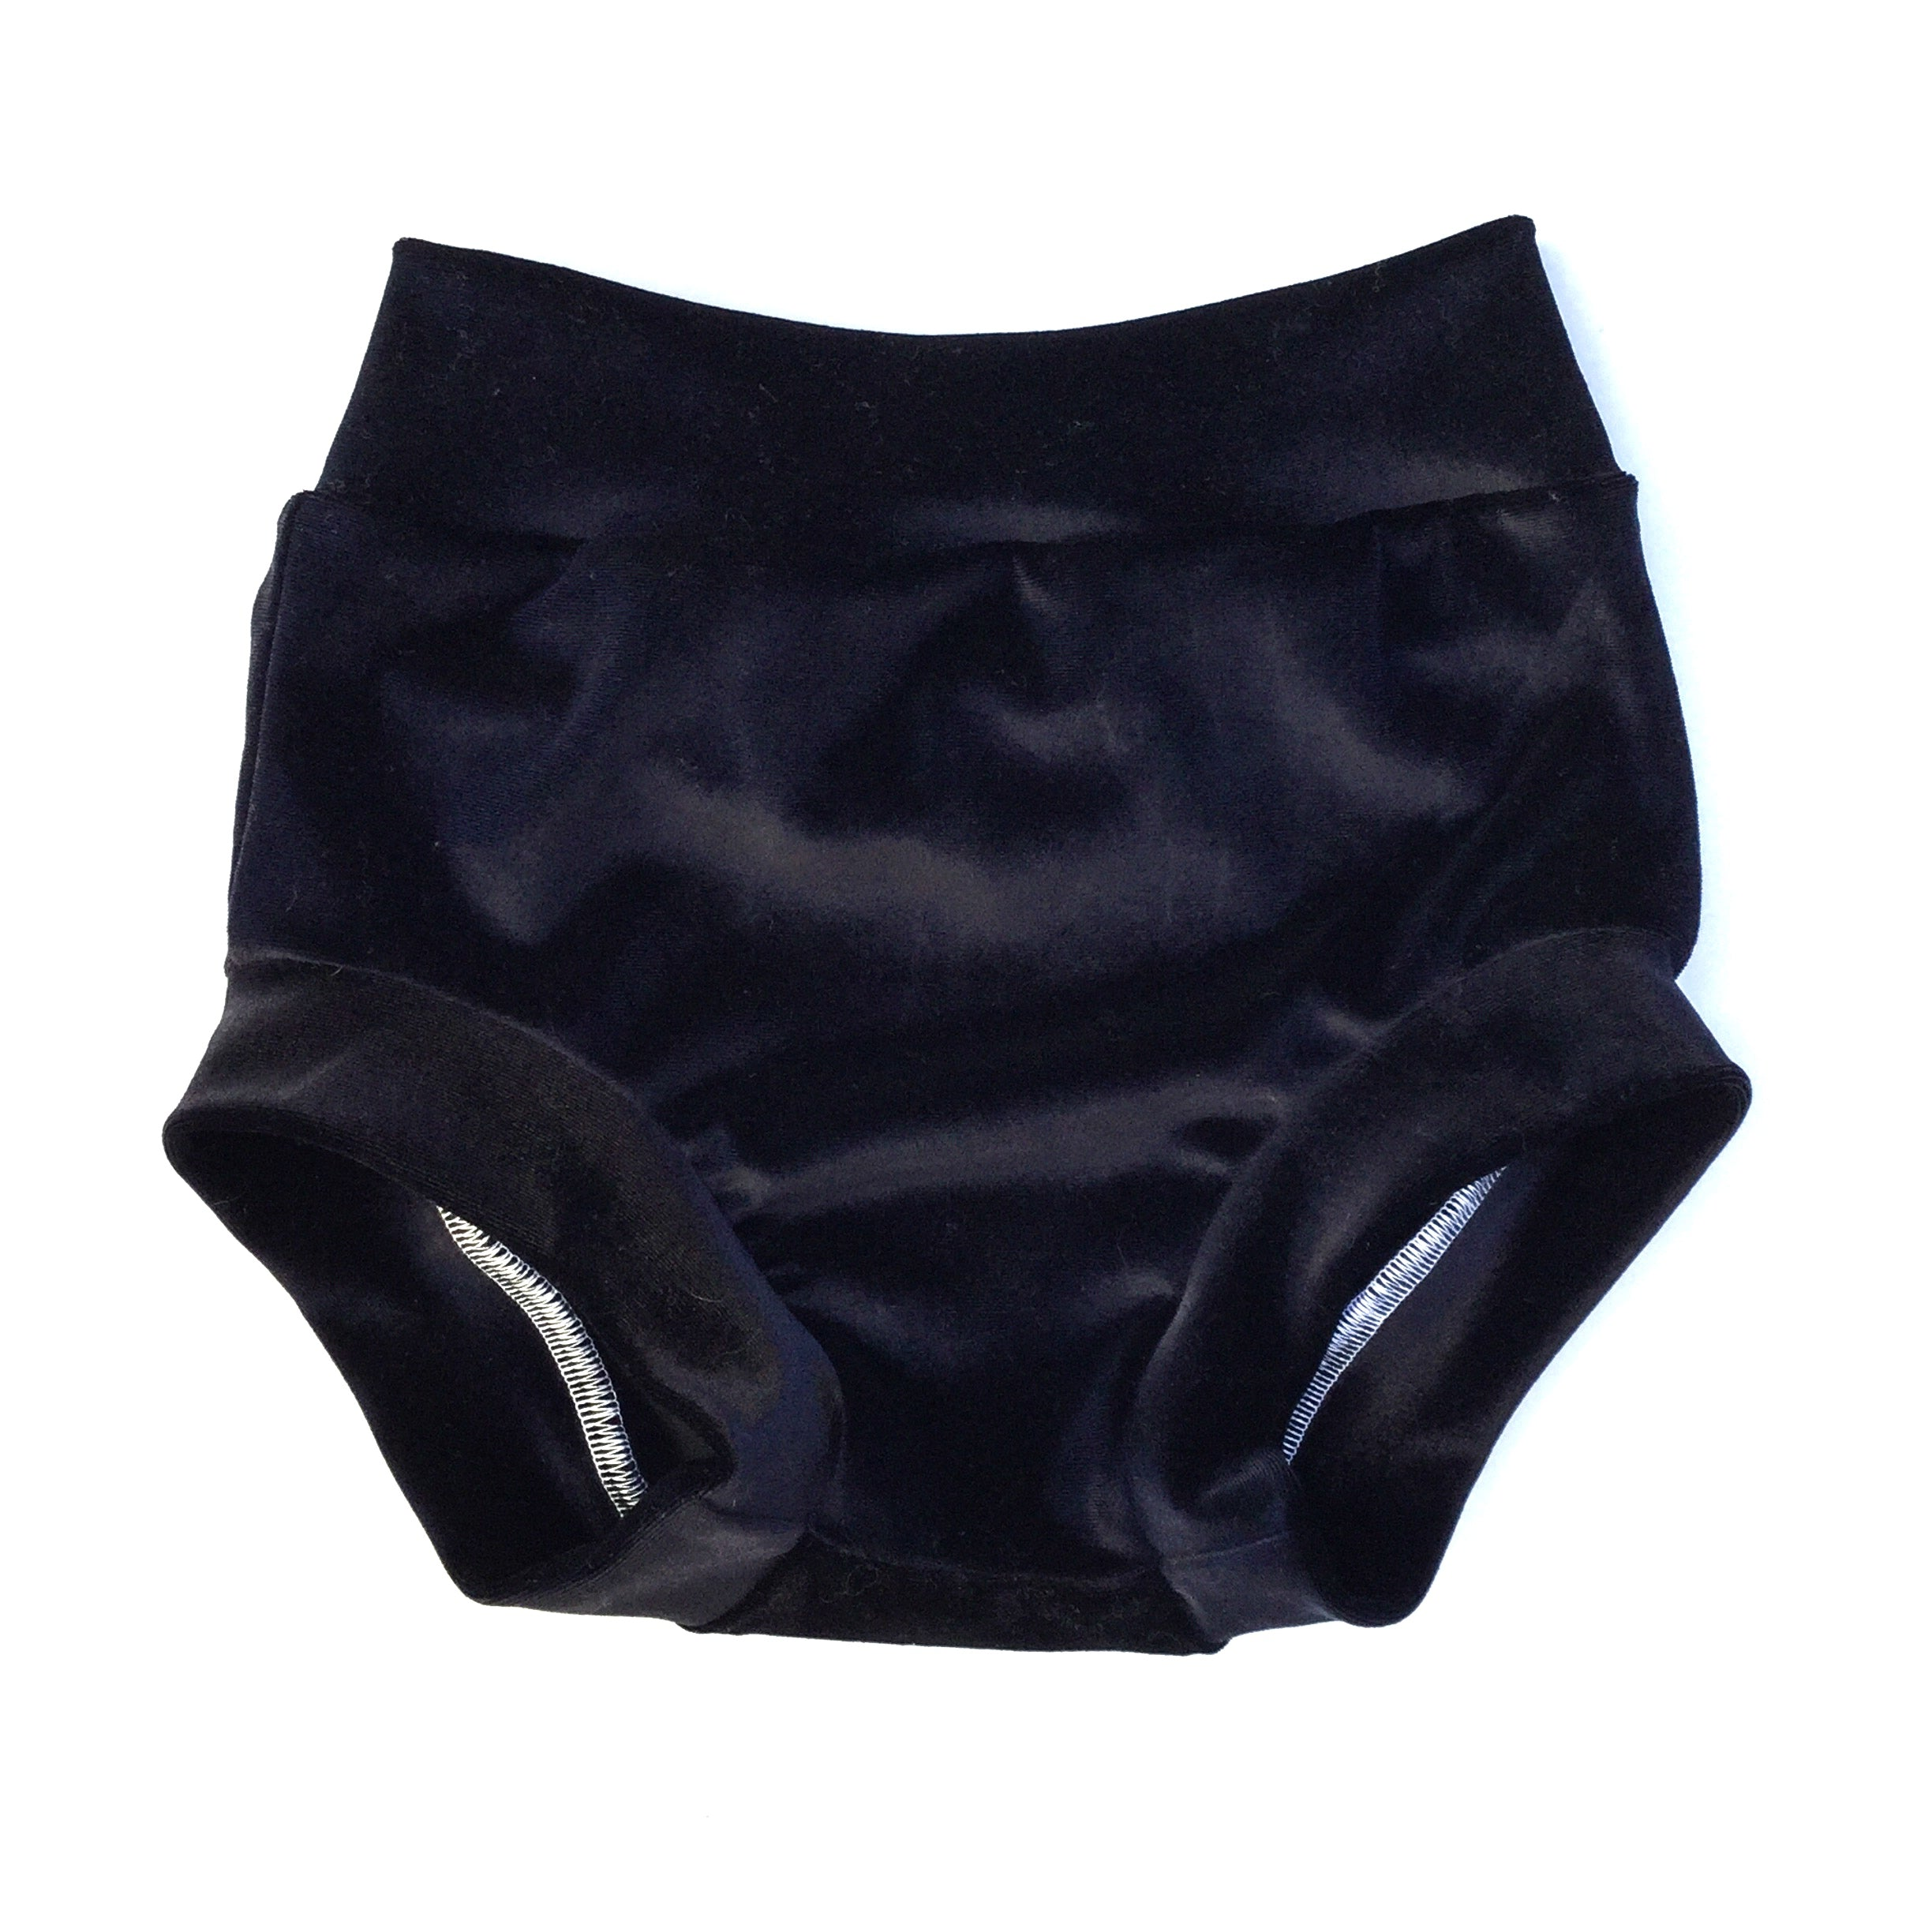 velvet black bummies for toddlers little posh babes